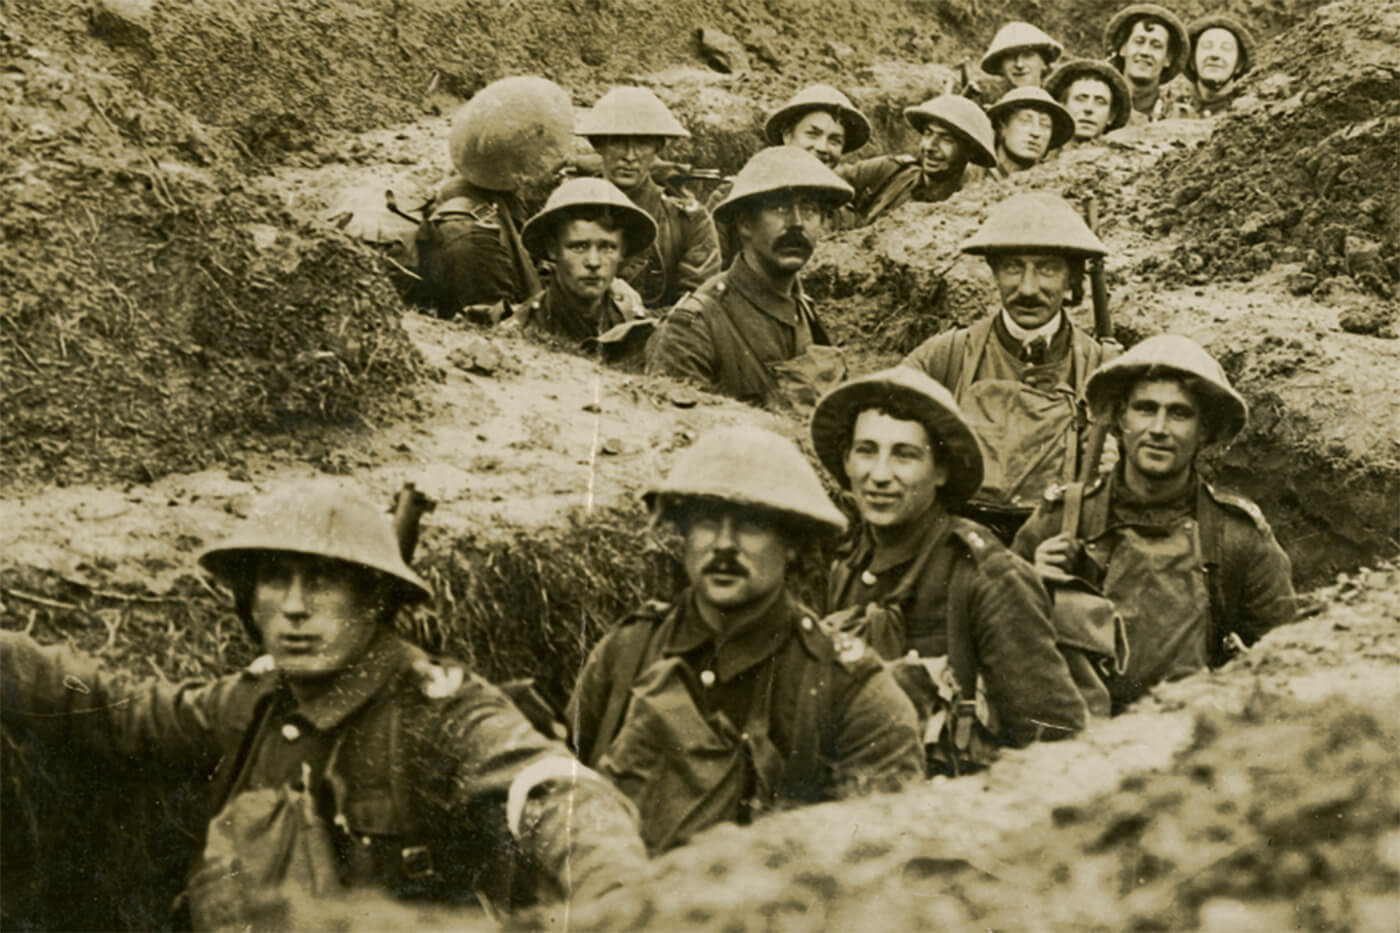 Black and white archive image of men stood in line in trenches